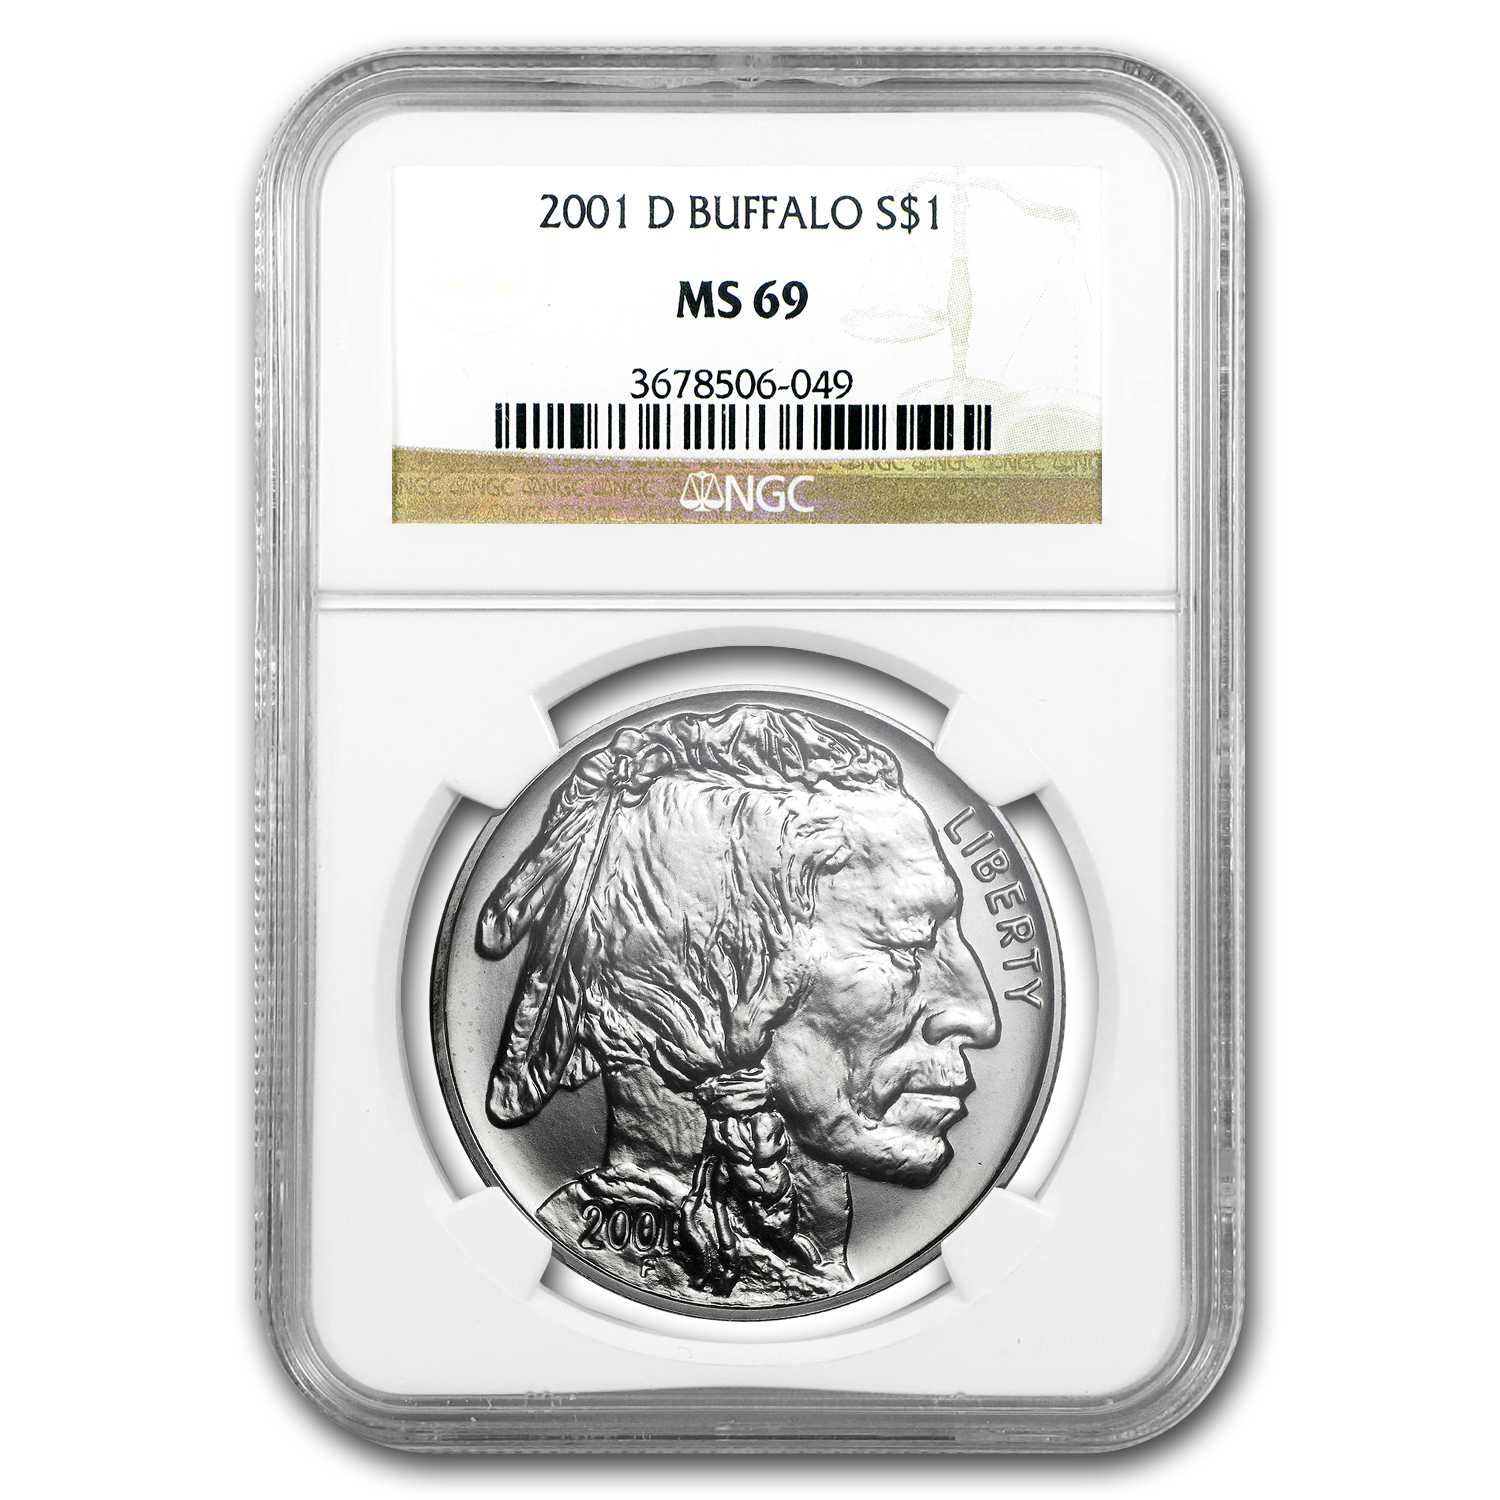 2001-D Buffalo $1 Silver Commemorative - MS-69 NGC